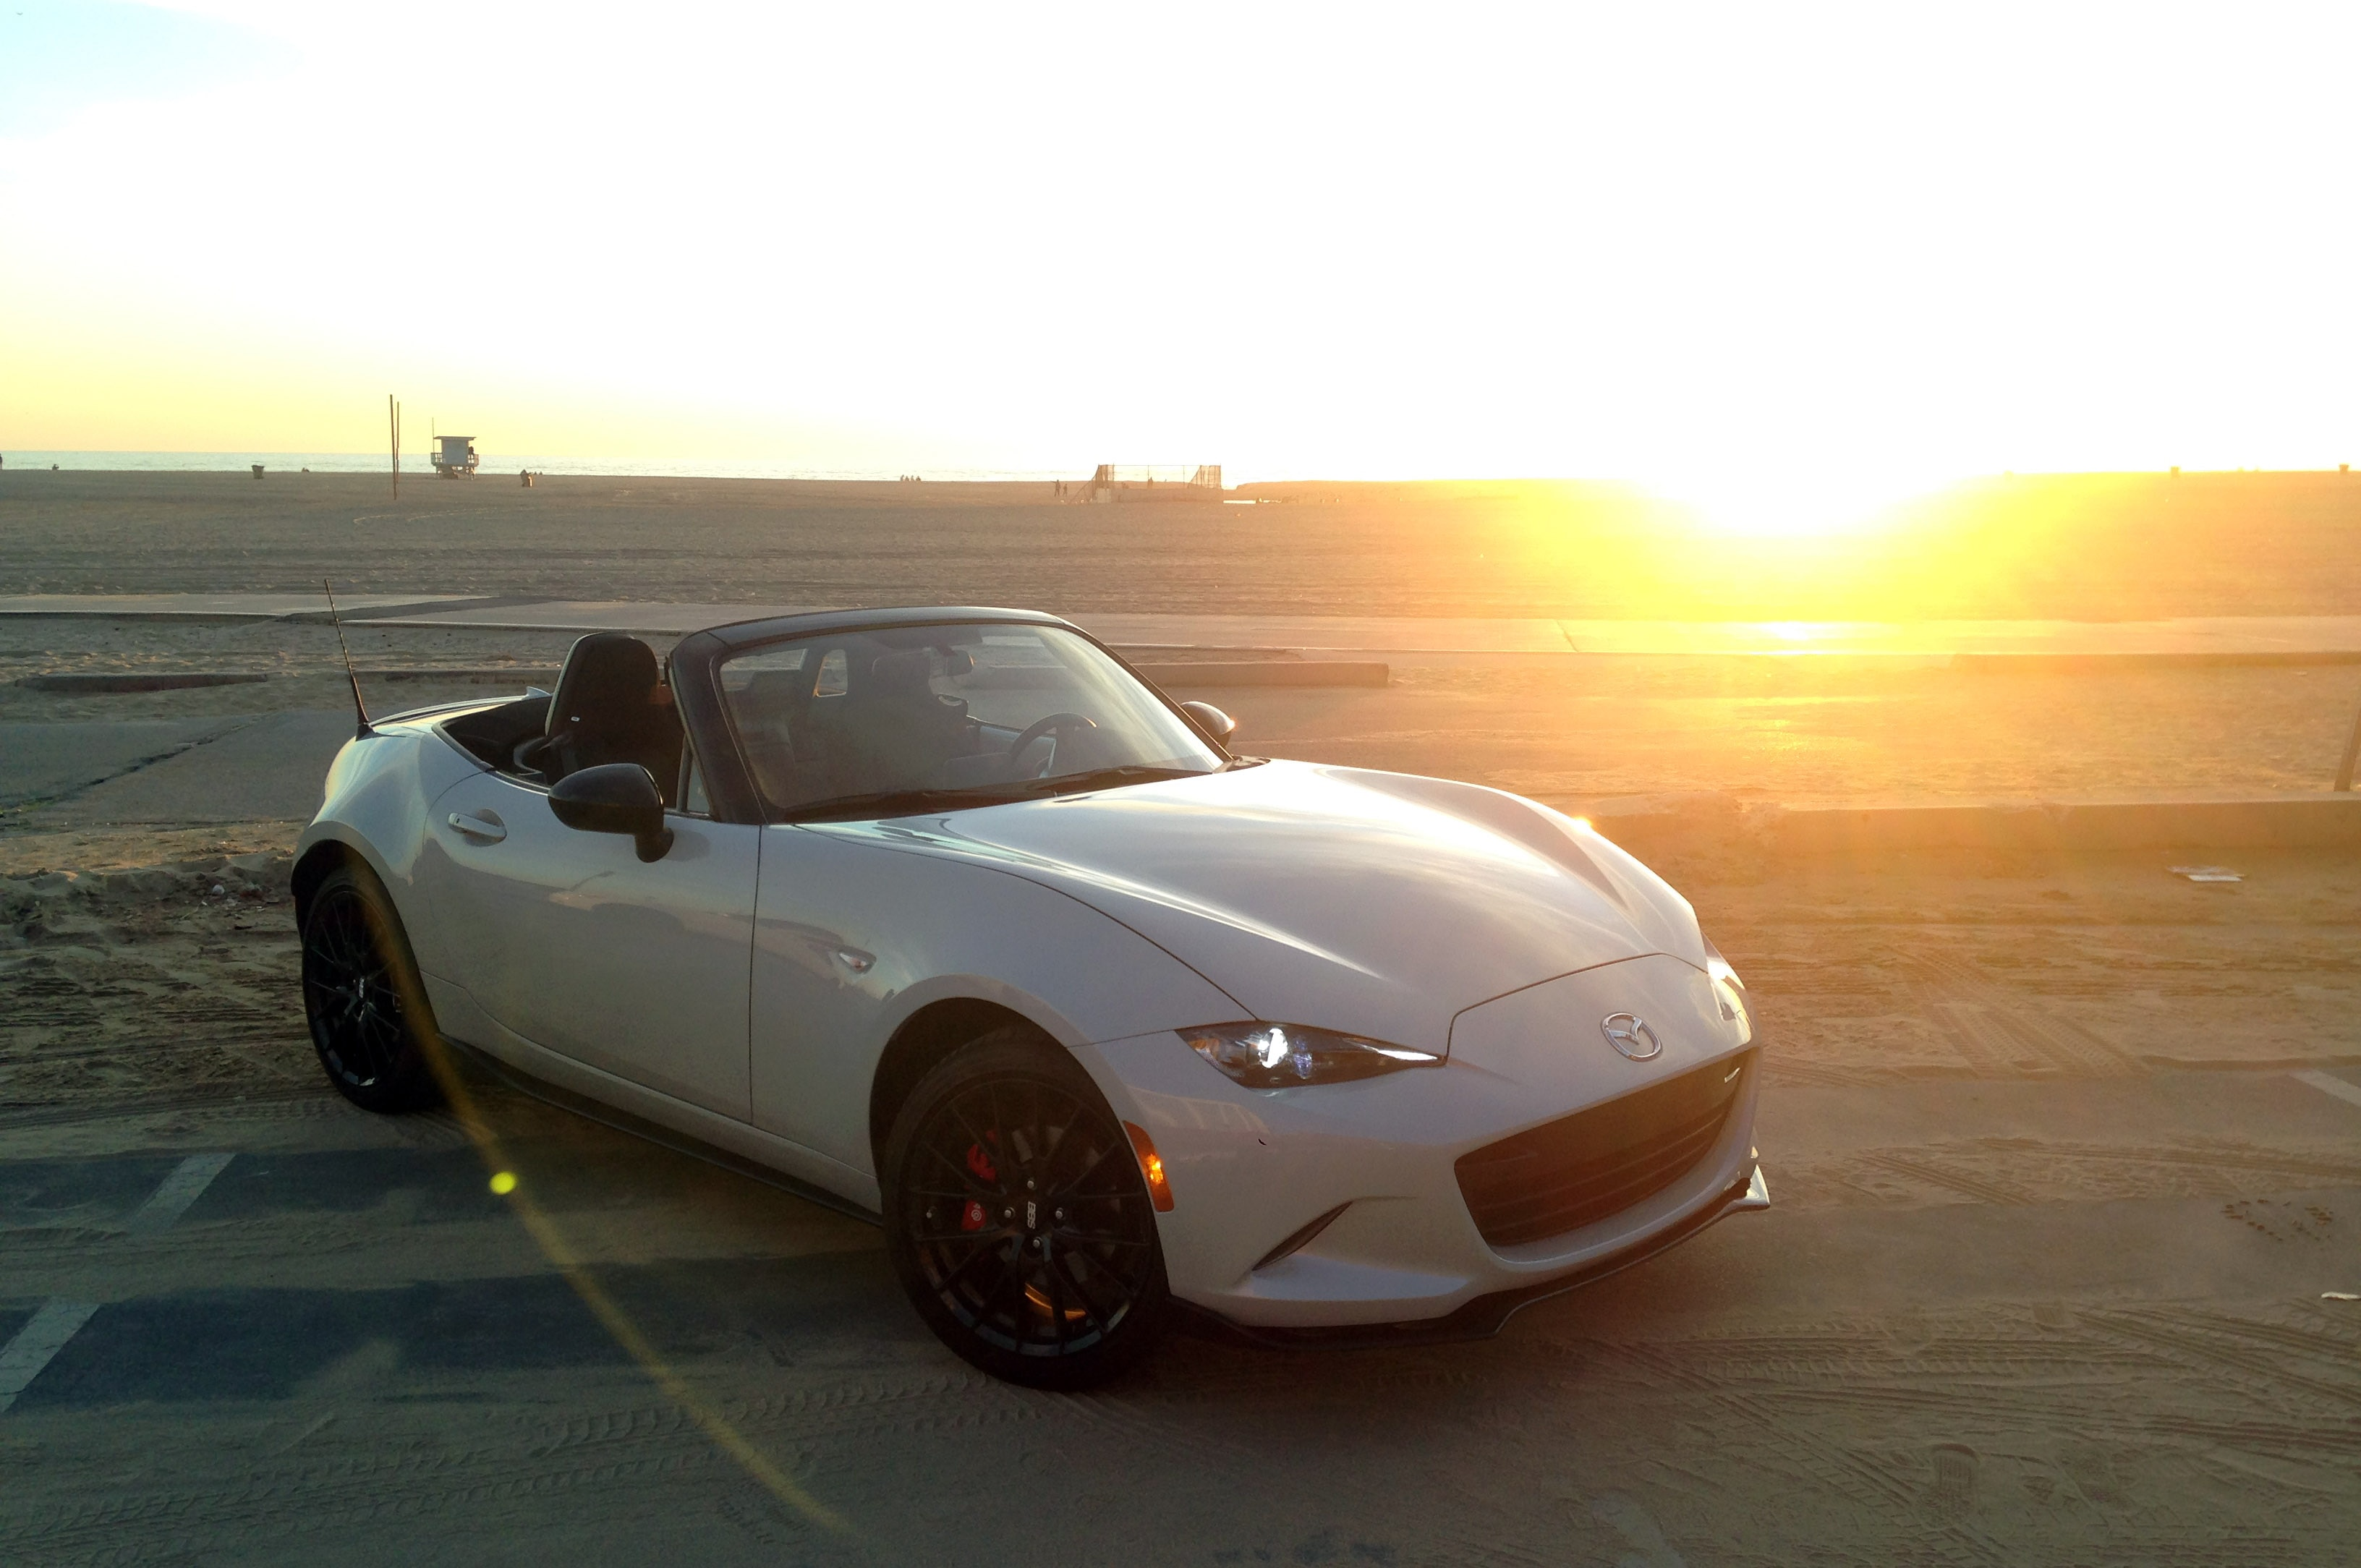 2016 Mazda MX-5 Miata – Old-World Charm Comes at a Price